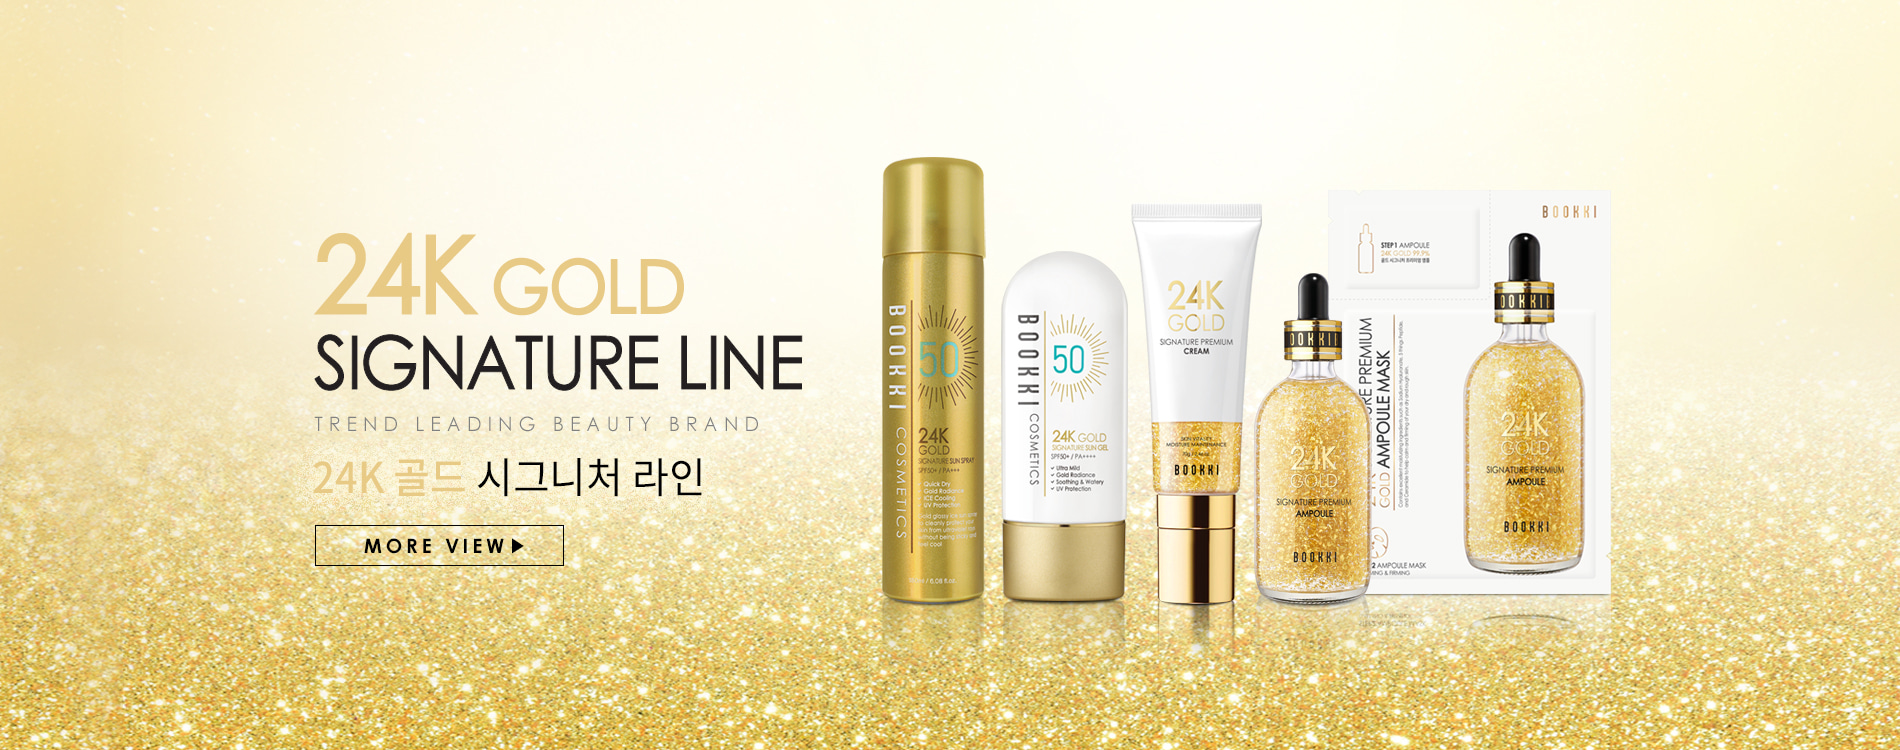 http://bookkikorea.com/category/24k-gold-line/24/